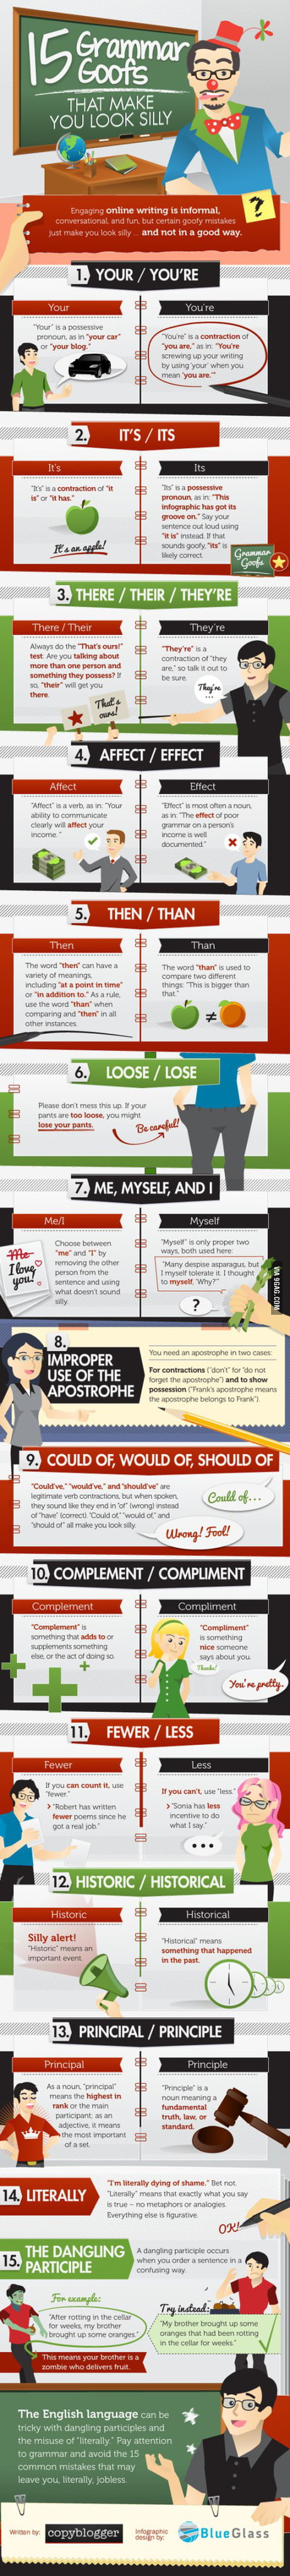 Common Mistakes in English Language AYpKNVv_460s